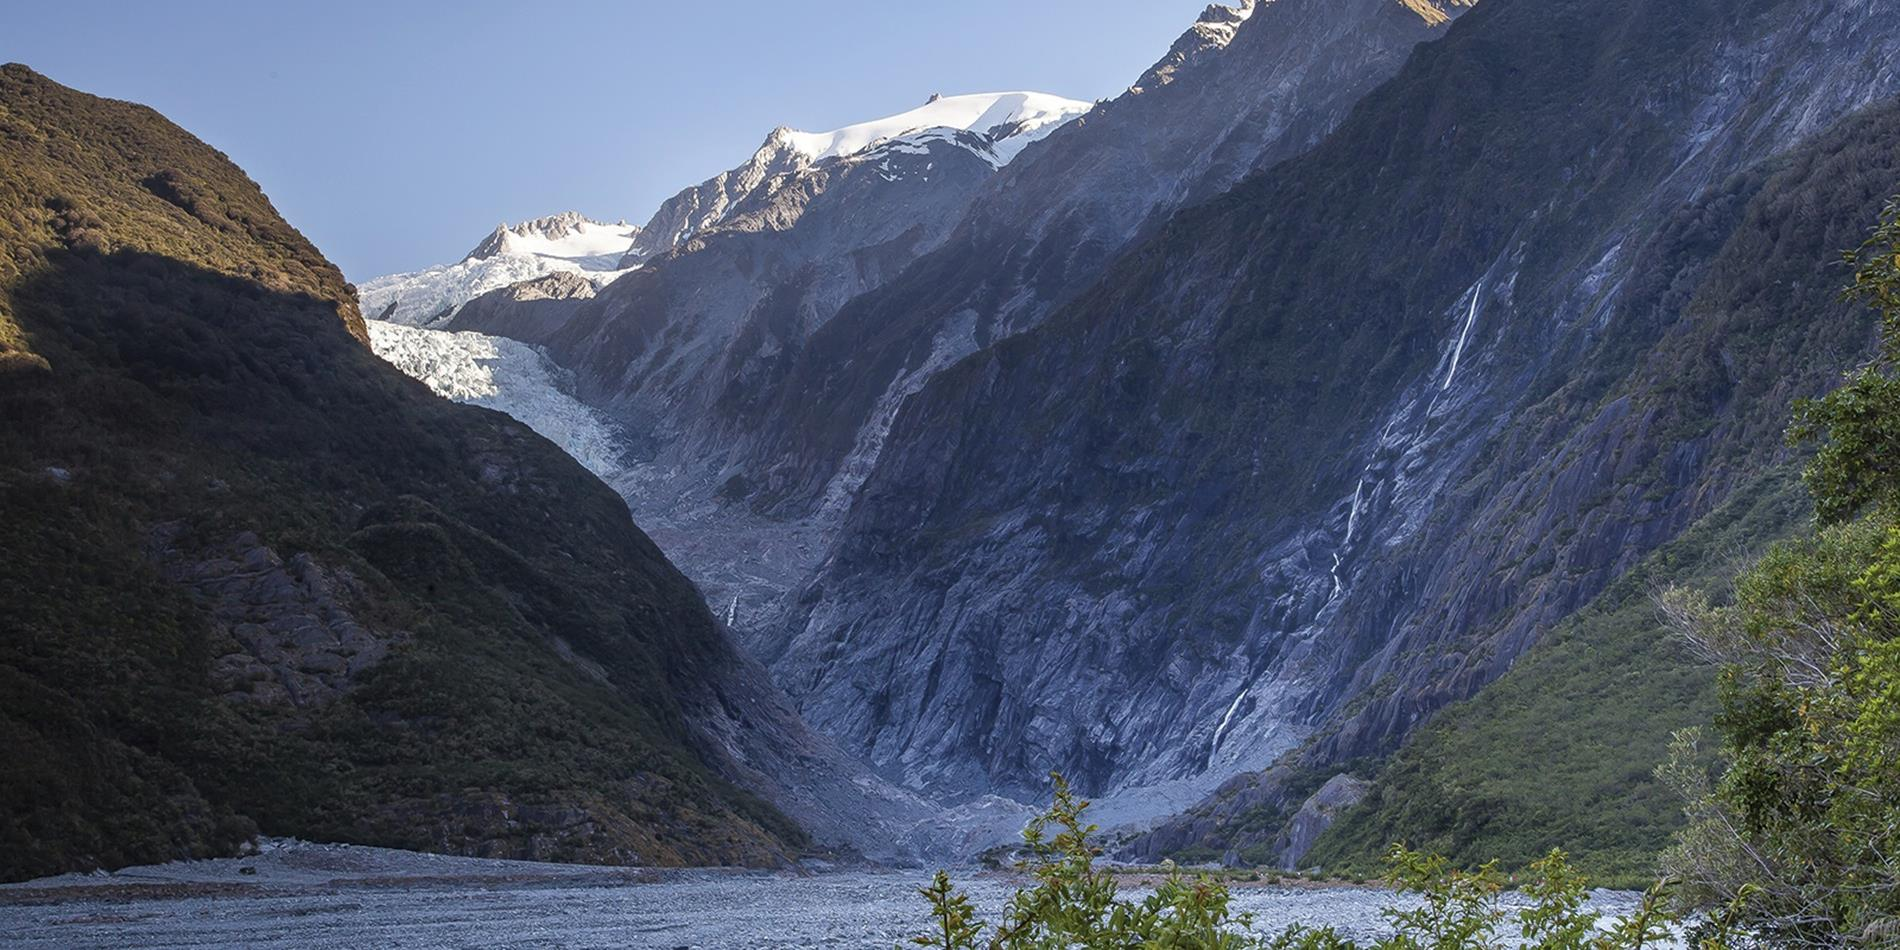 View looking up to Franz Josef Glacier, New Zealand